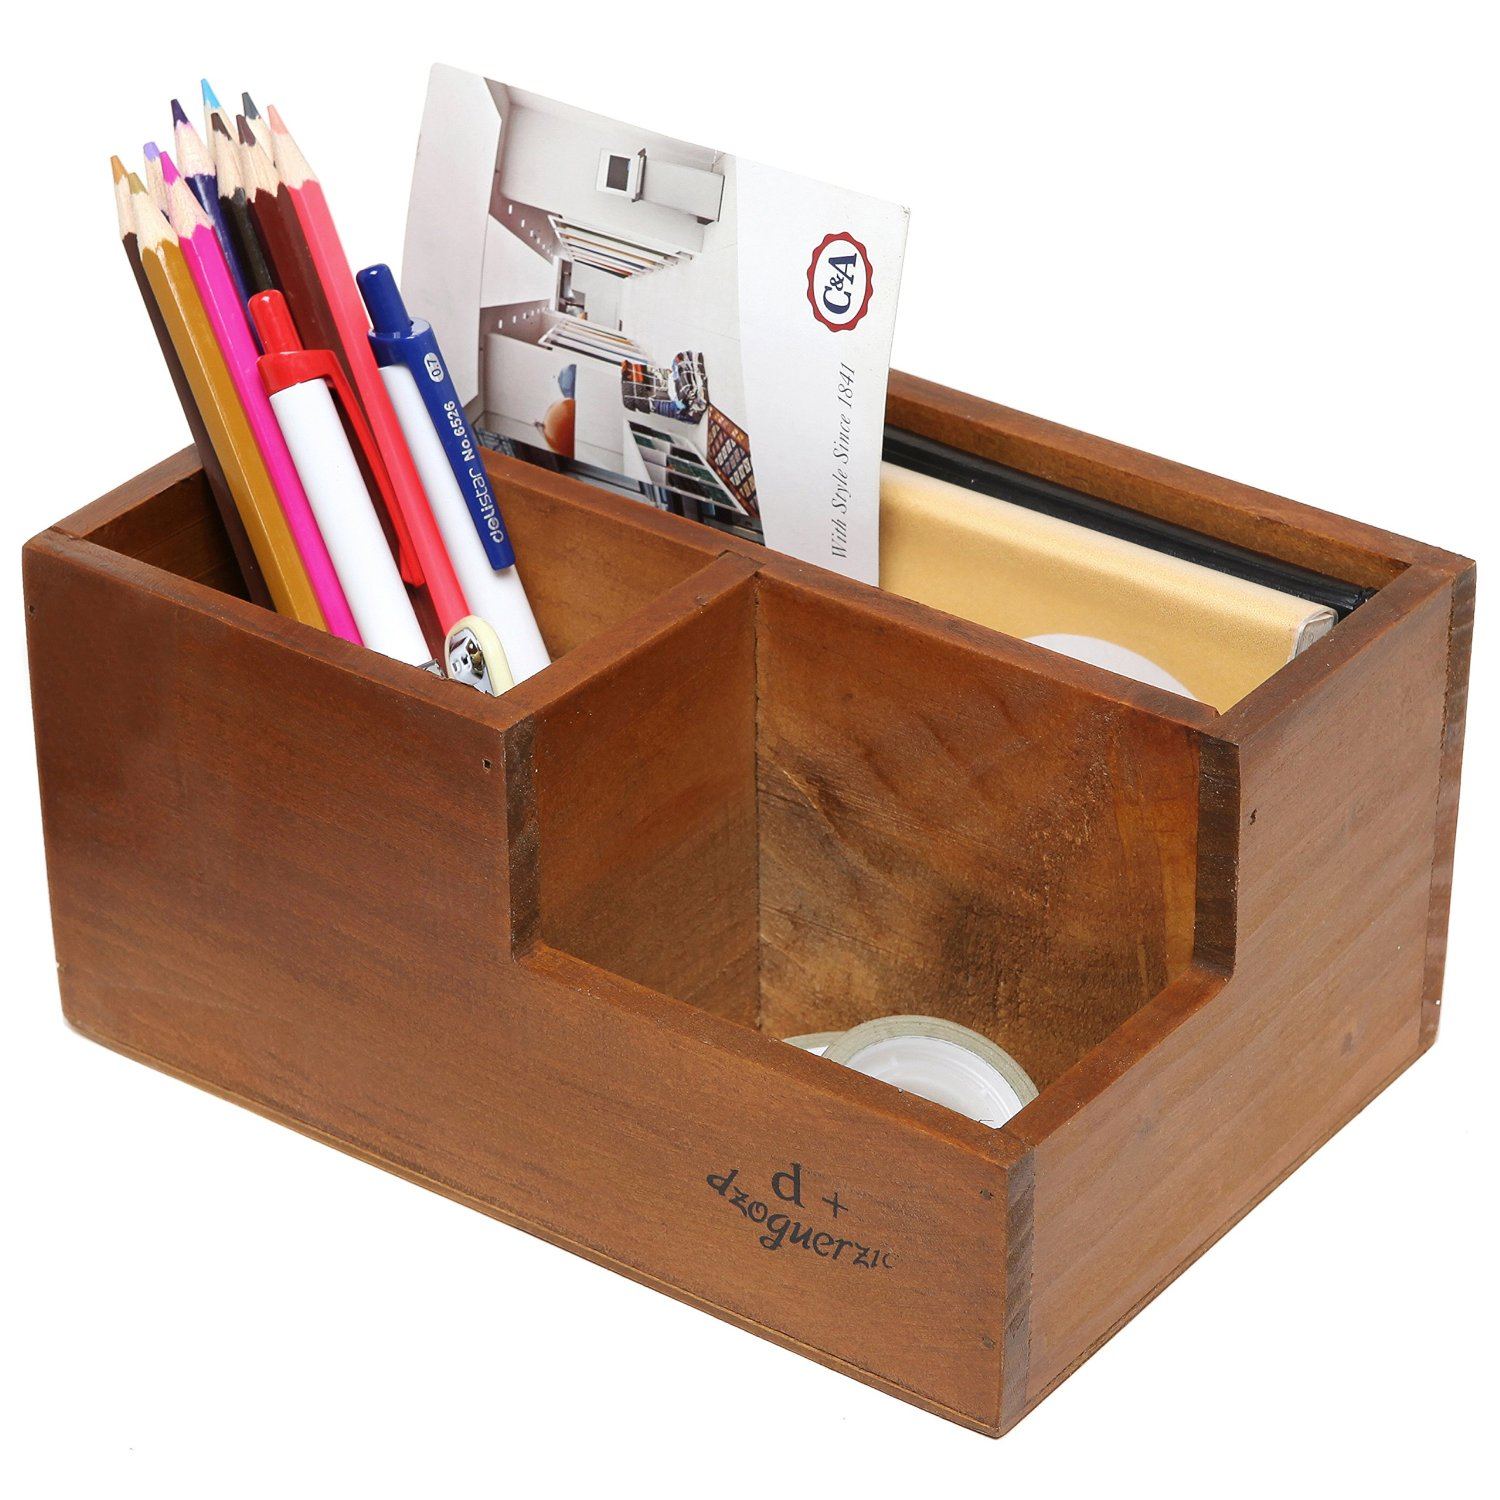 3 Compartment Classic Brown Wood Desktop Office Supply Caddy / Pen Holder /  Mail Holder /